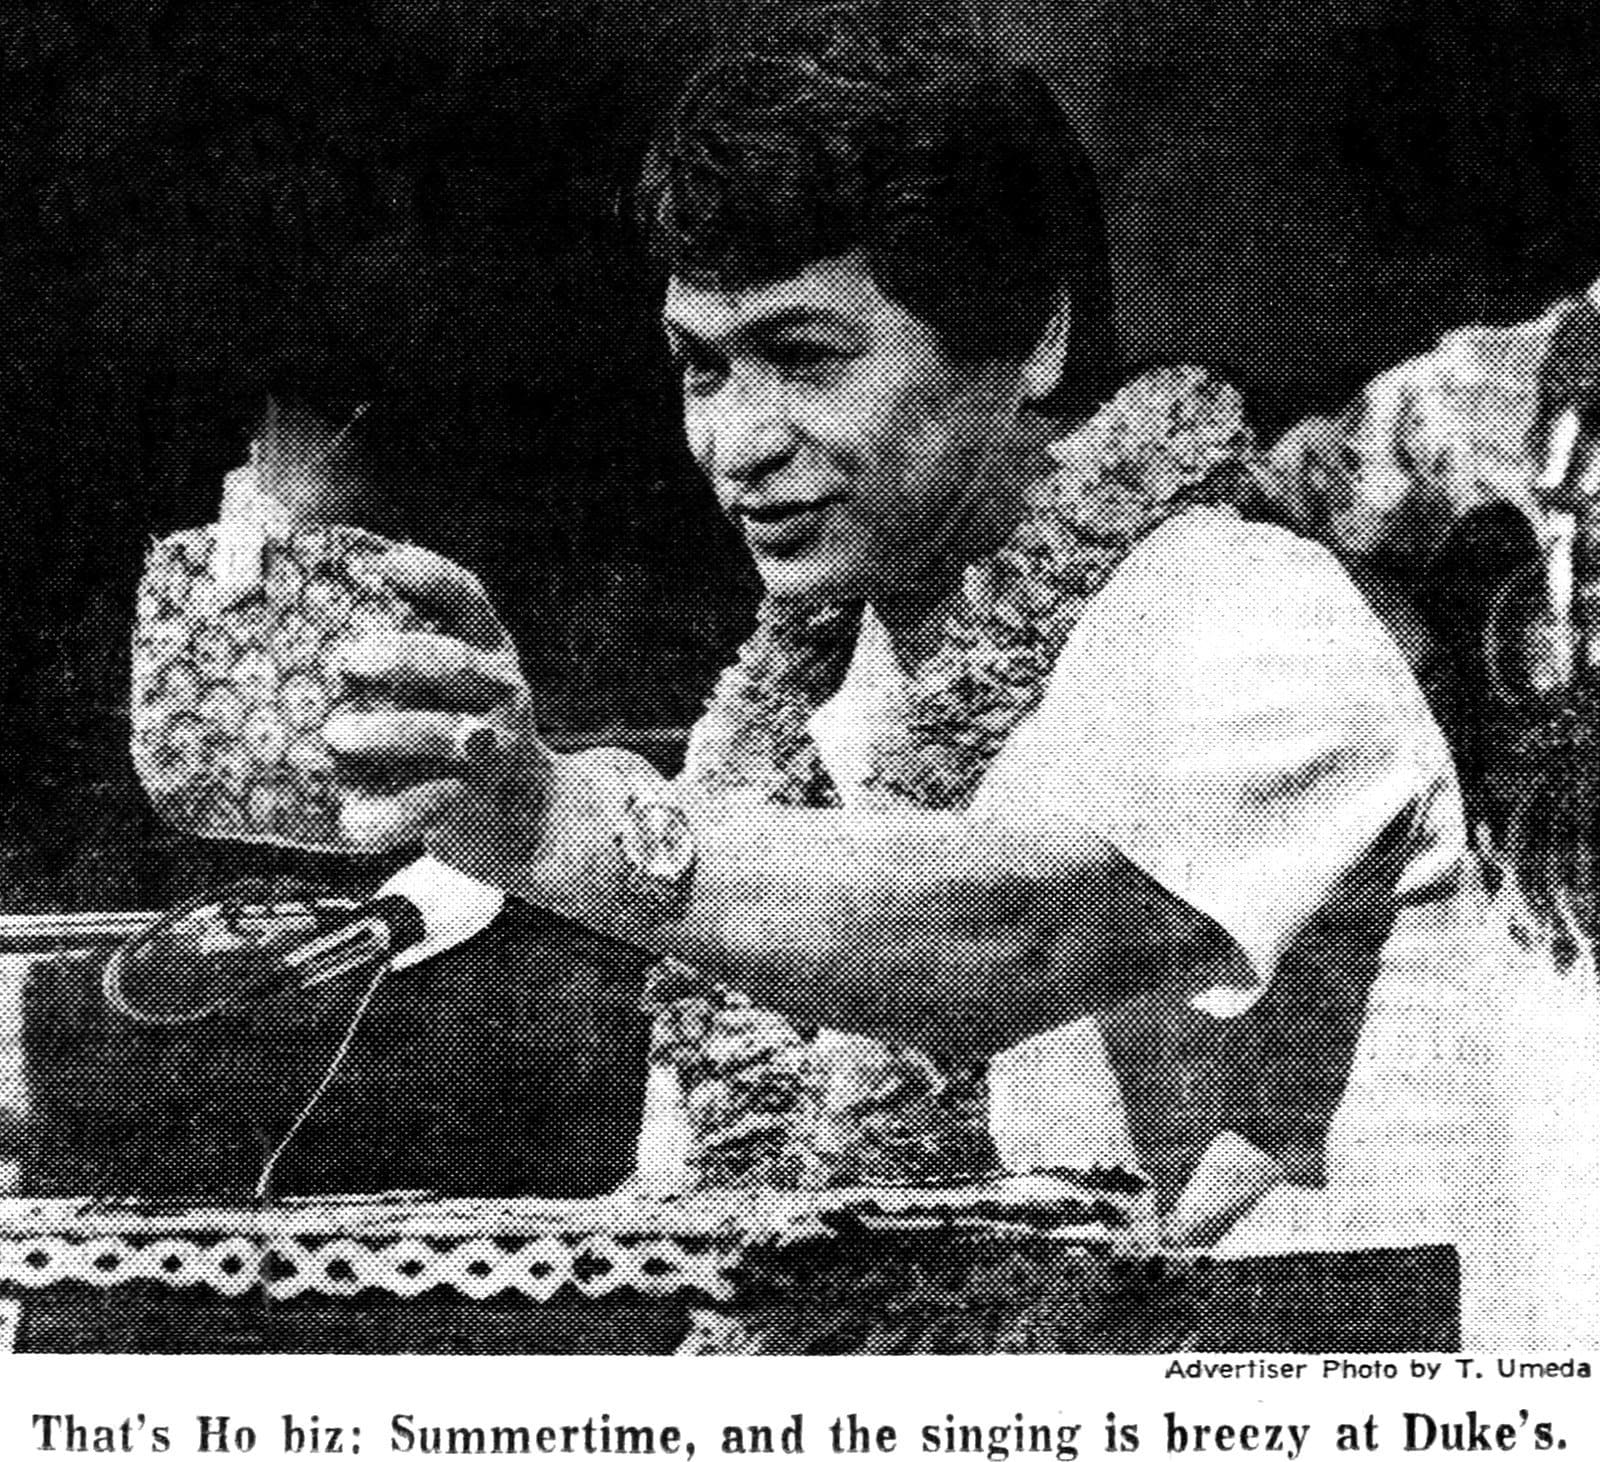 Vintage Don Ho in 1968 - On stage with pineapple drink